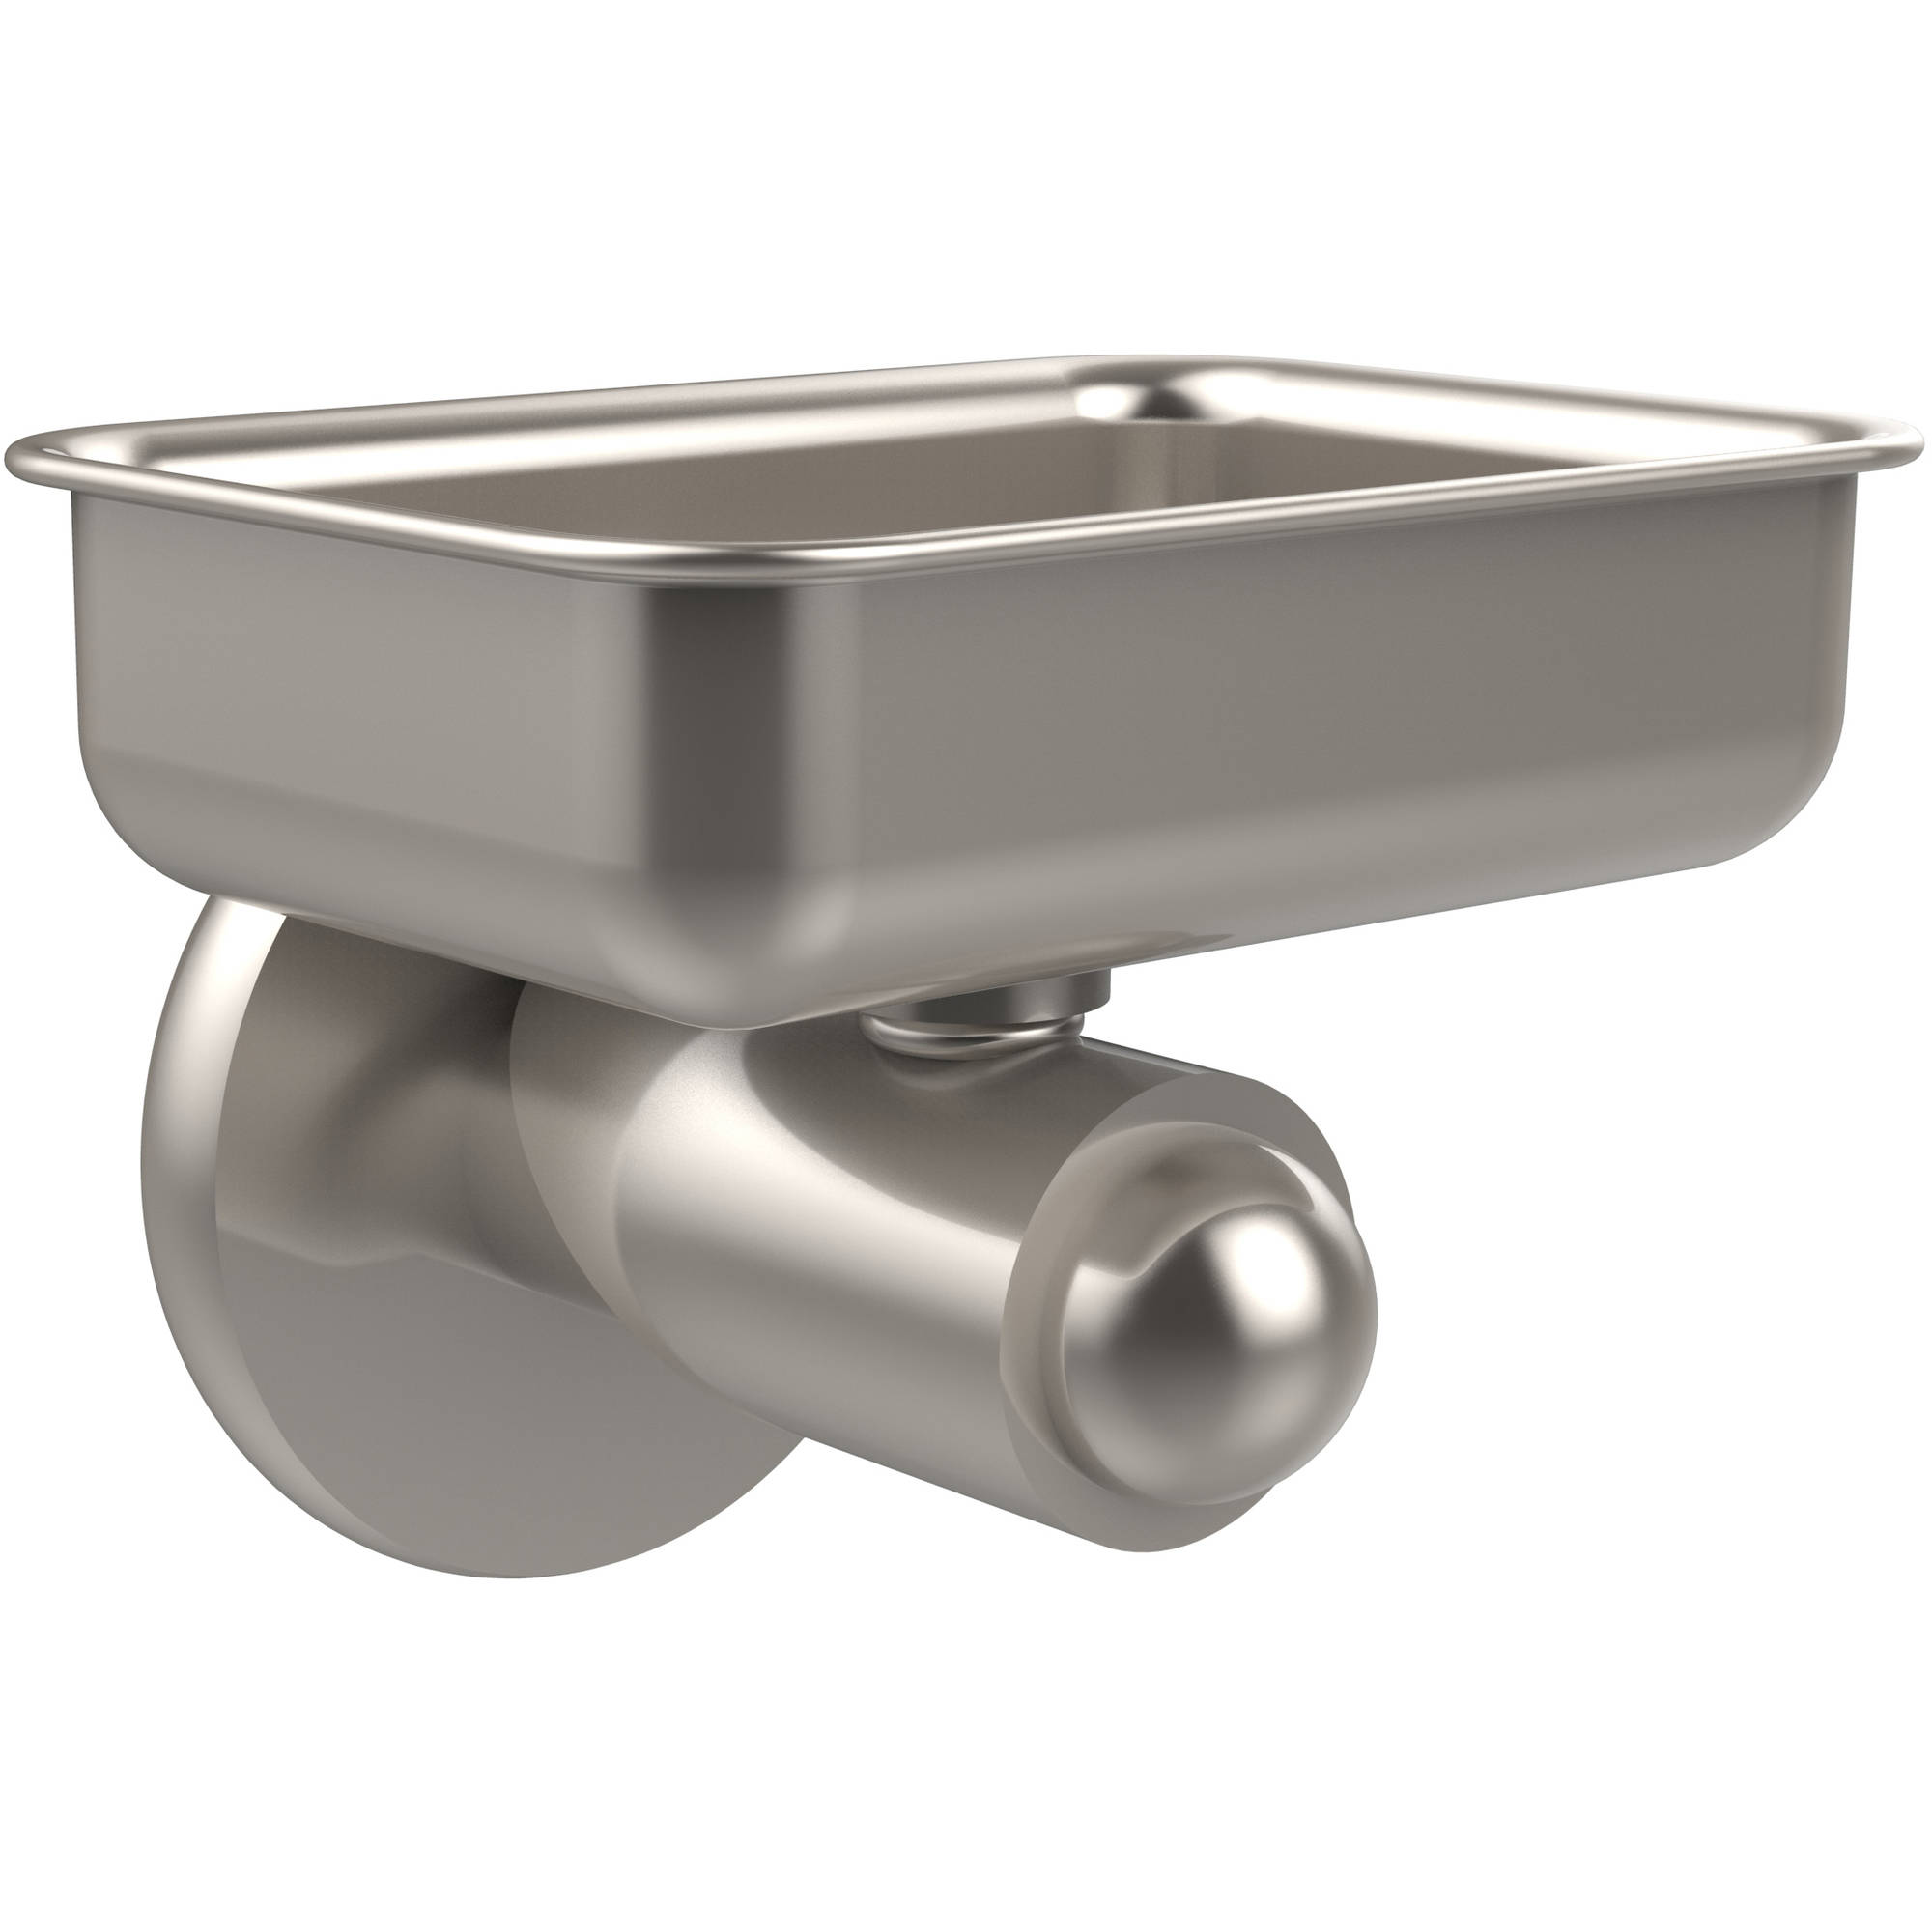 Soho Collection Wall-Mounted Soap Dish (Build to Order)